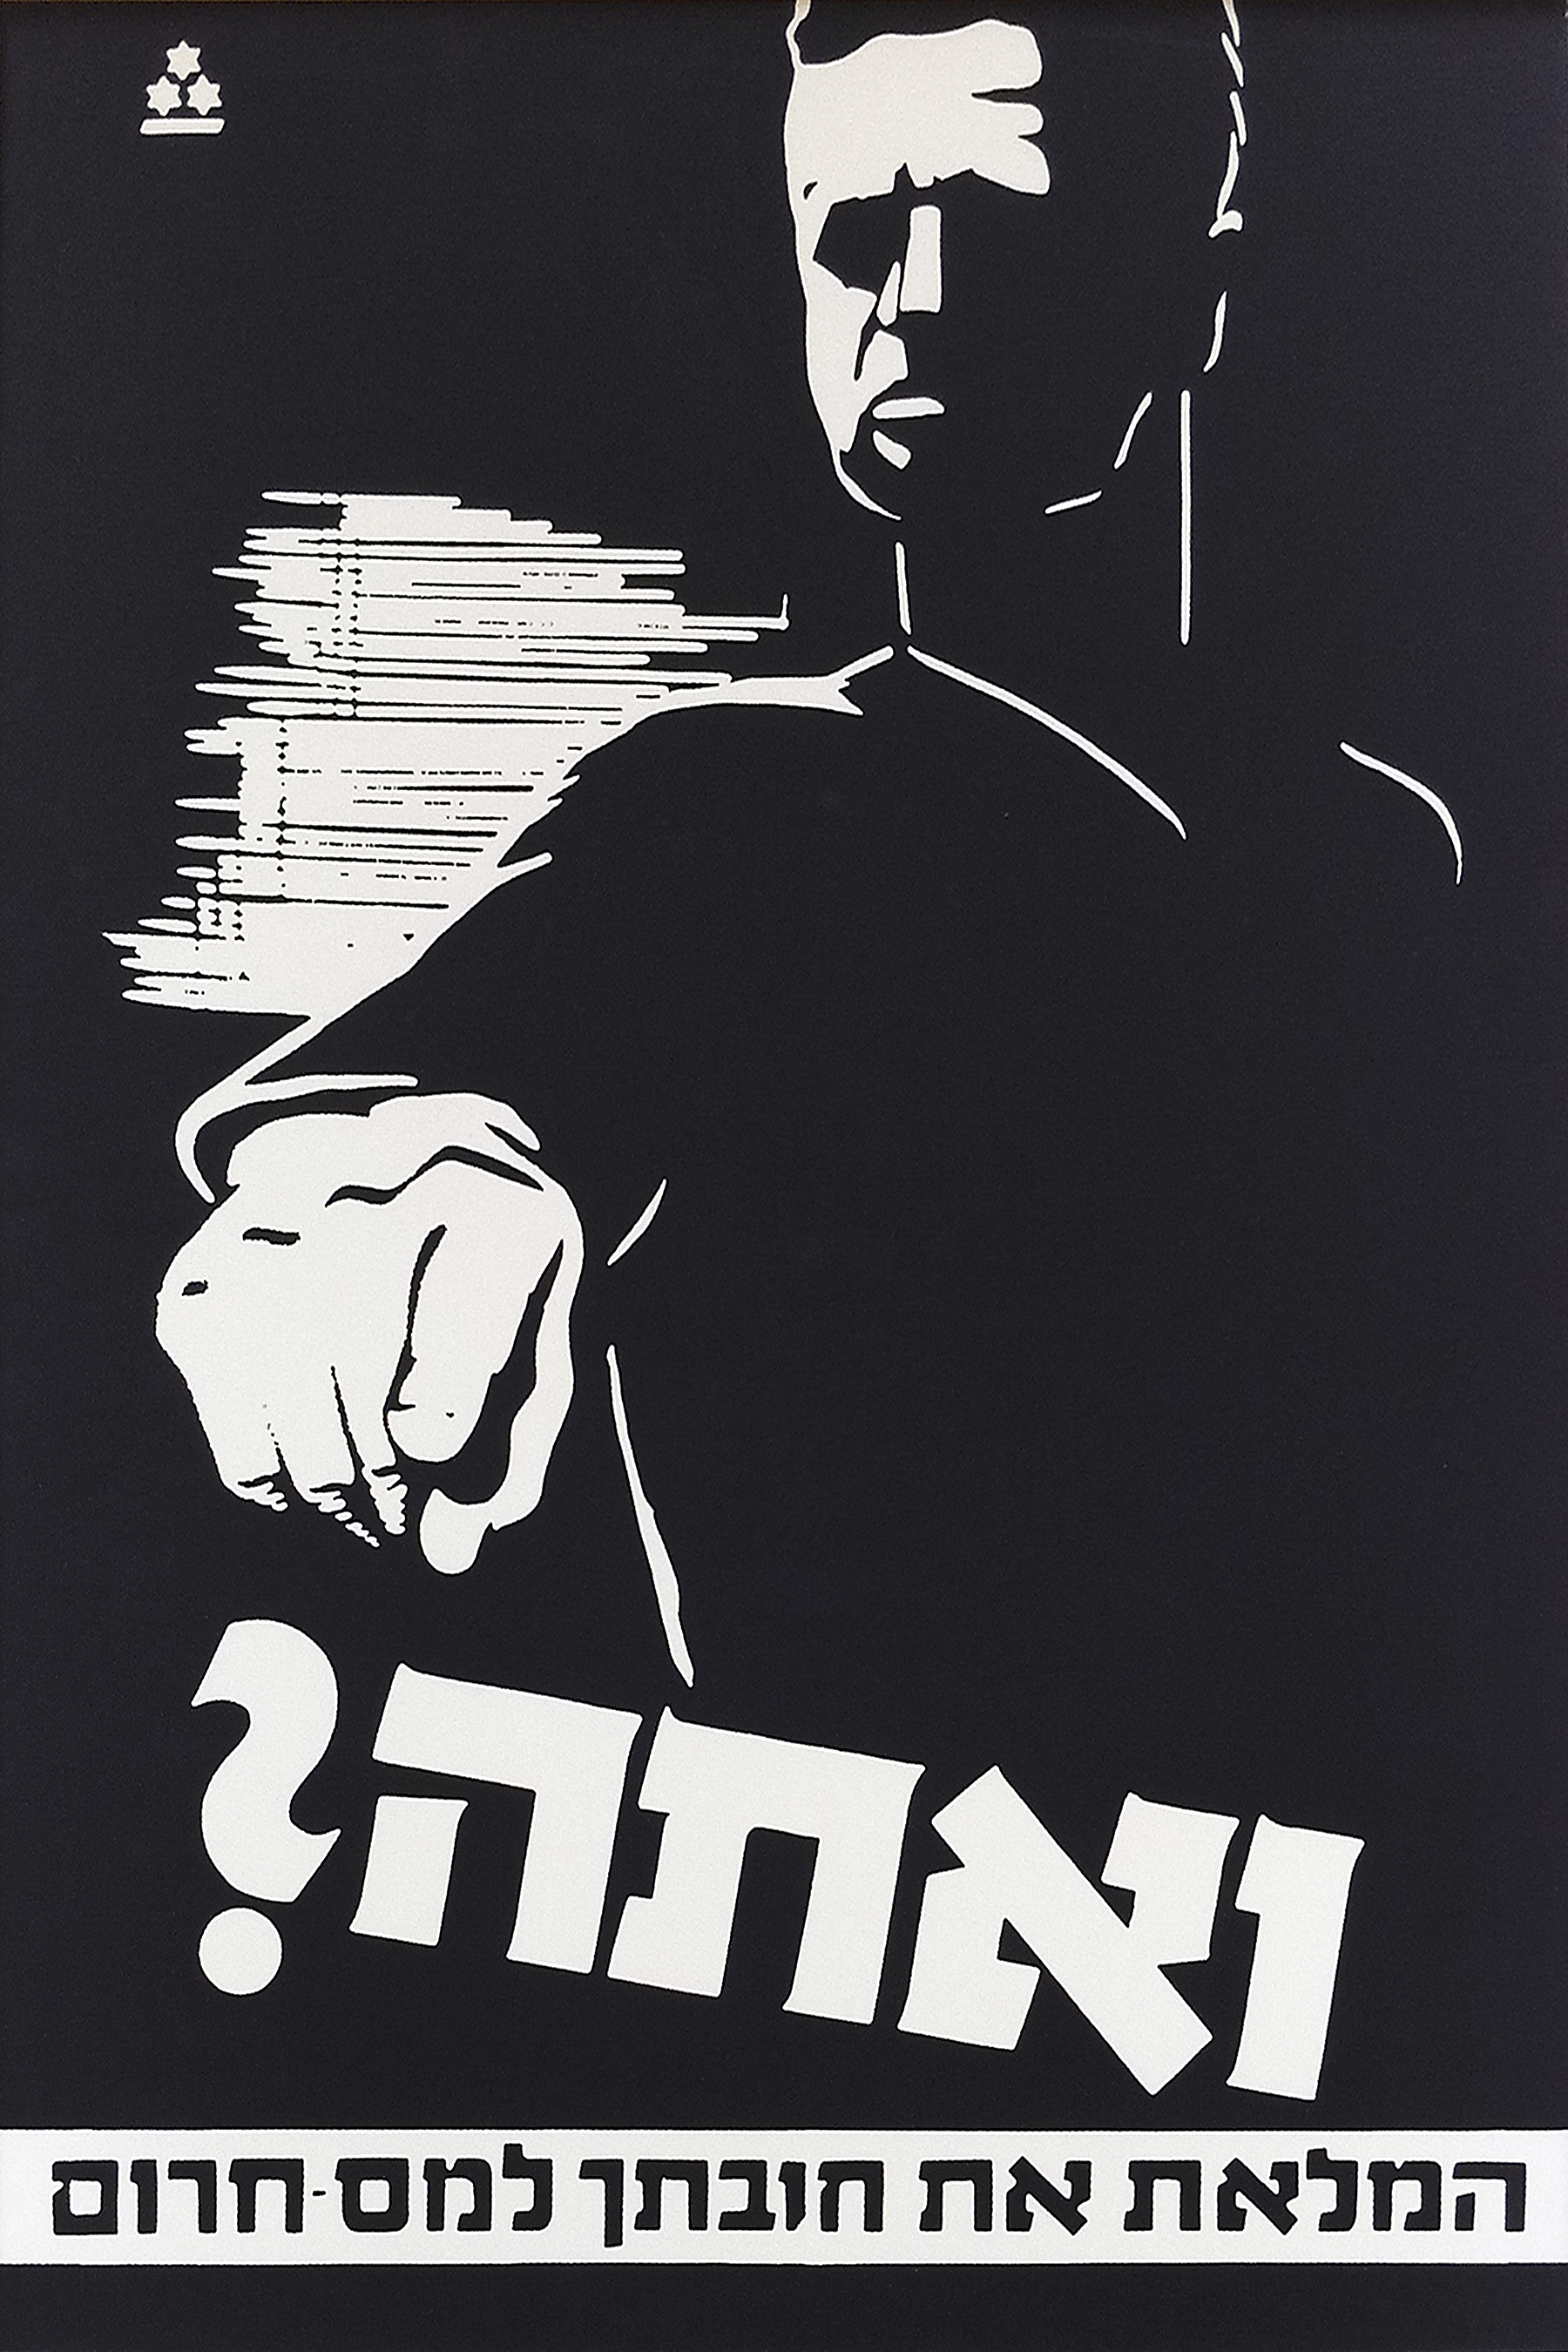 Httpwww Overlordsofchaos Comhtmlorigin Of The Word Jew Html: Vintage Posters